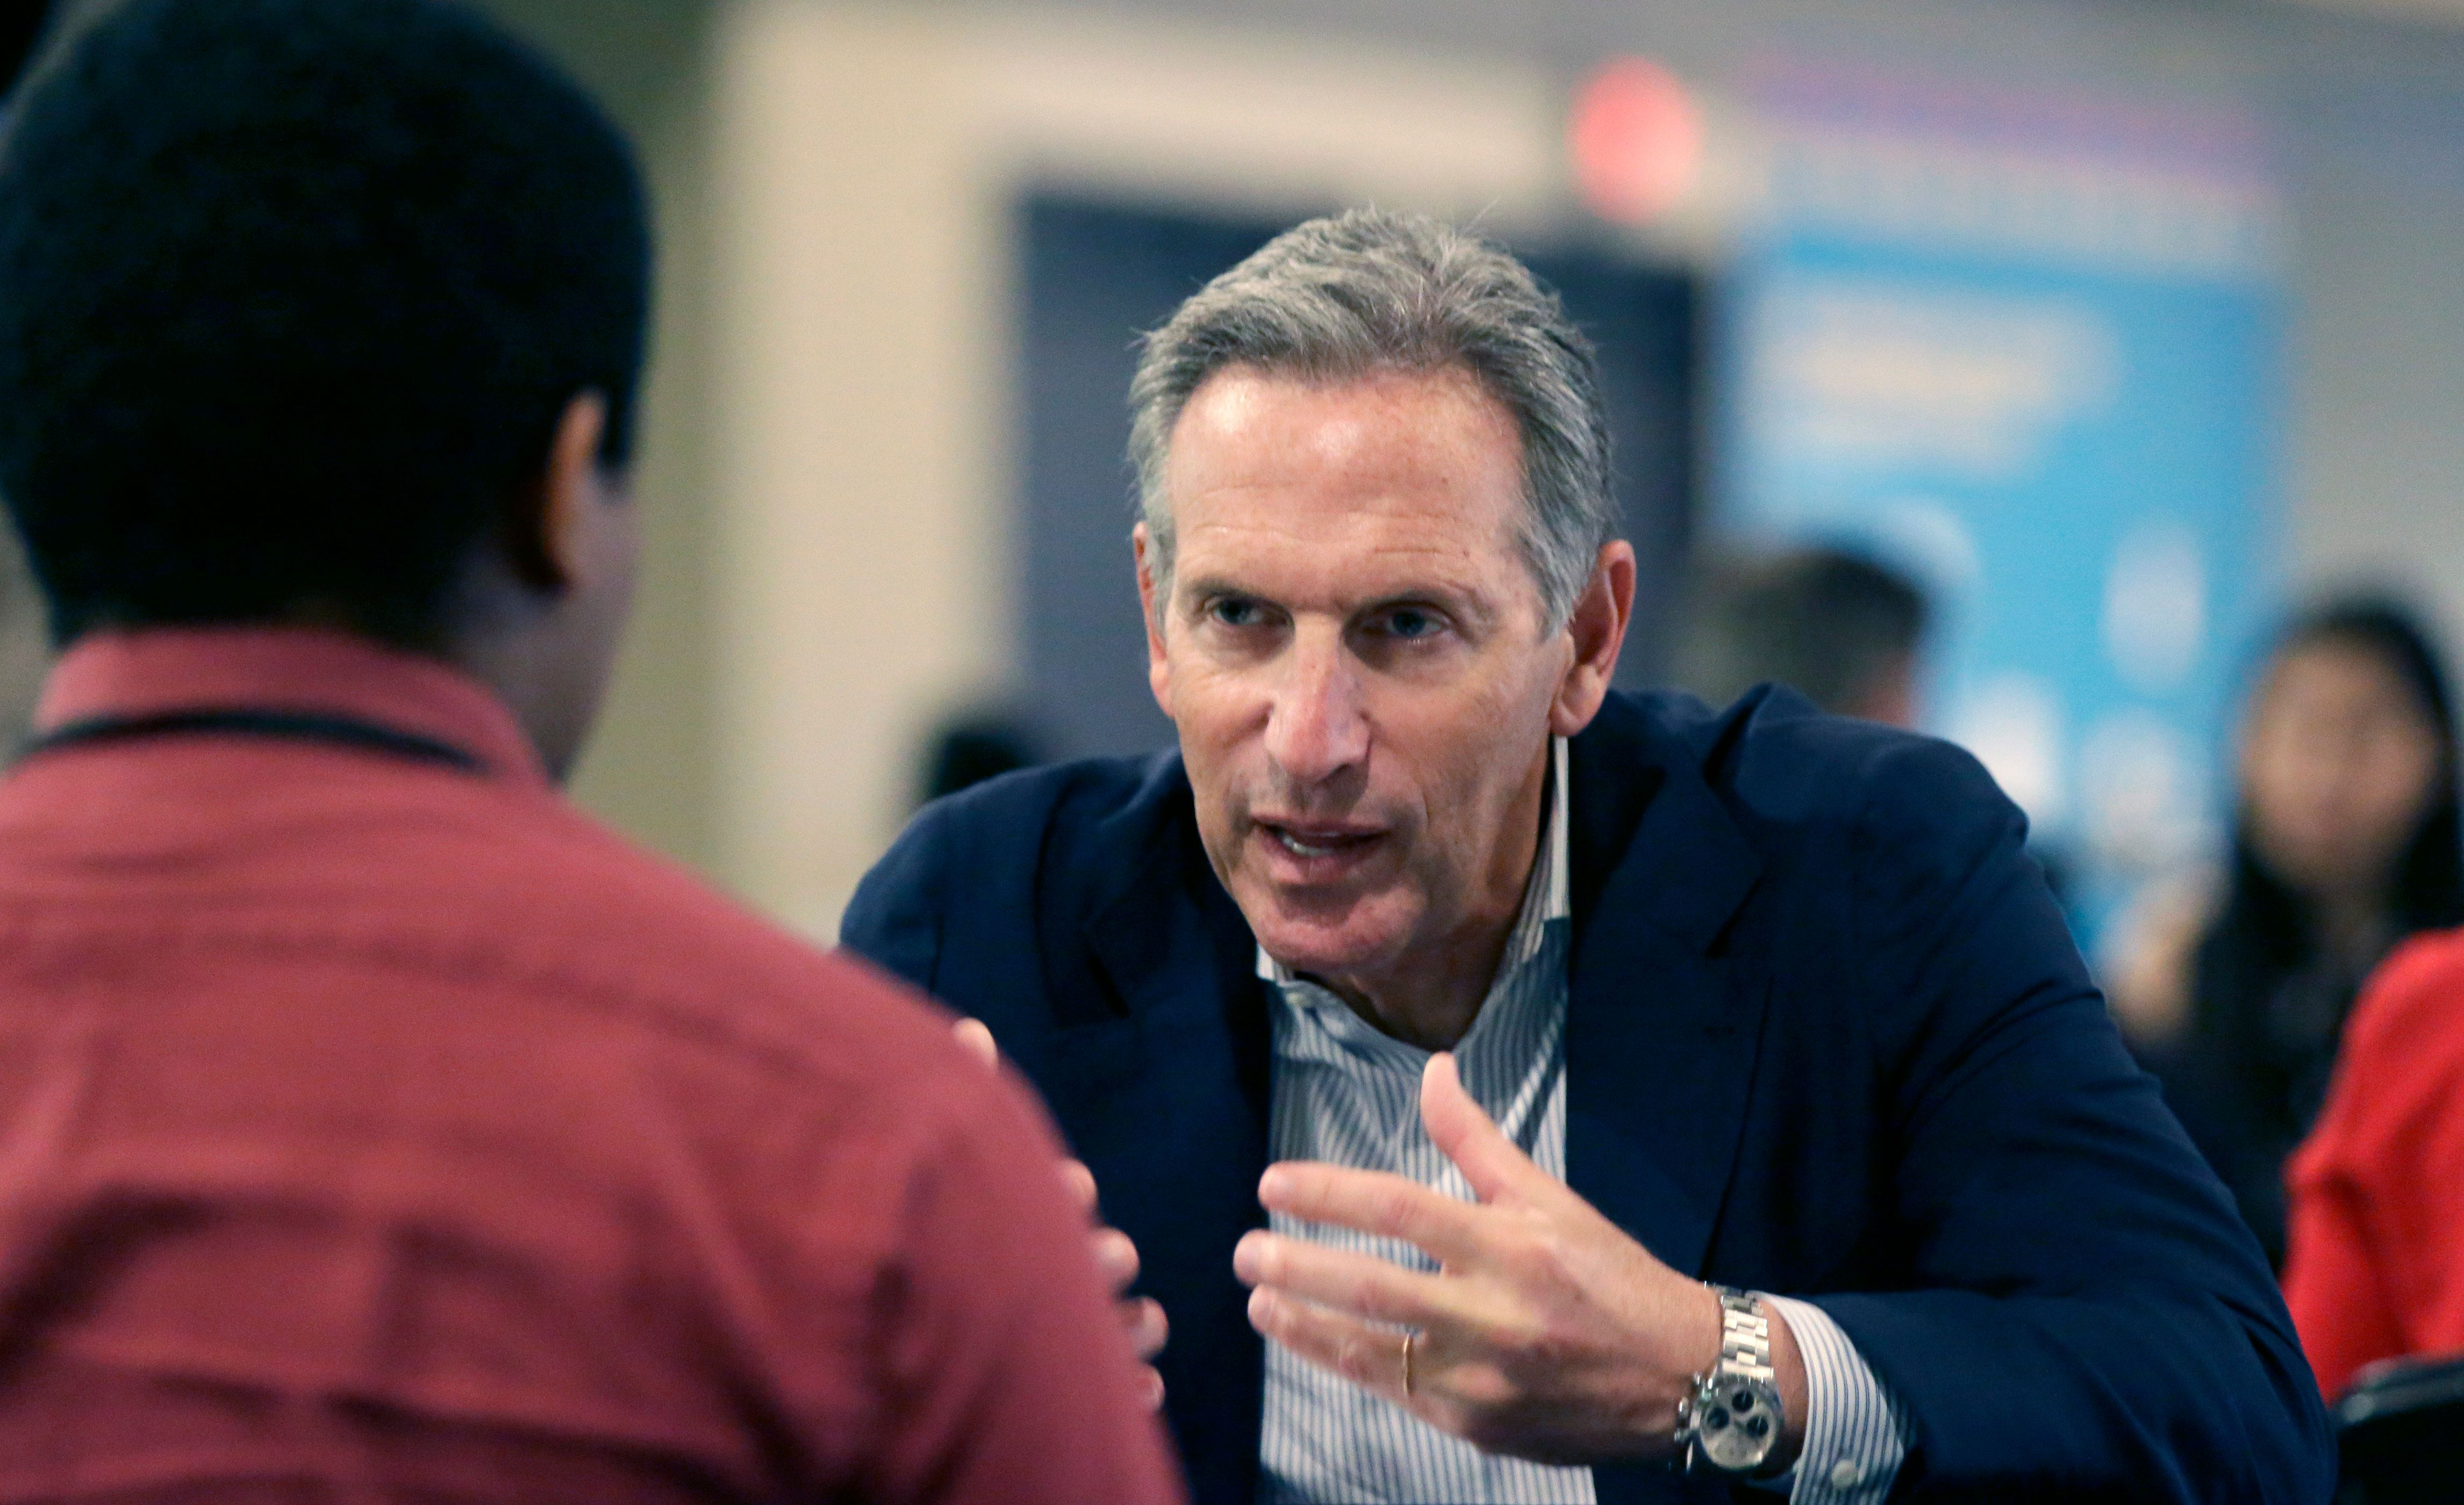 Starbucks CEO Howard Schultz, right, speaks to a job seeker during the Opportunity Fair and Forum employment event in Dallas, Friday, May 19, 2017. (AP Photo/LM Otero)